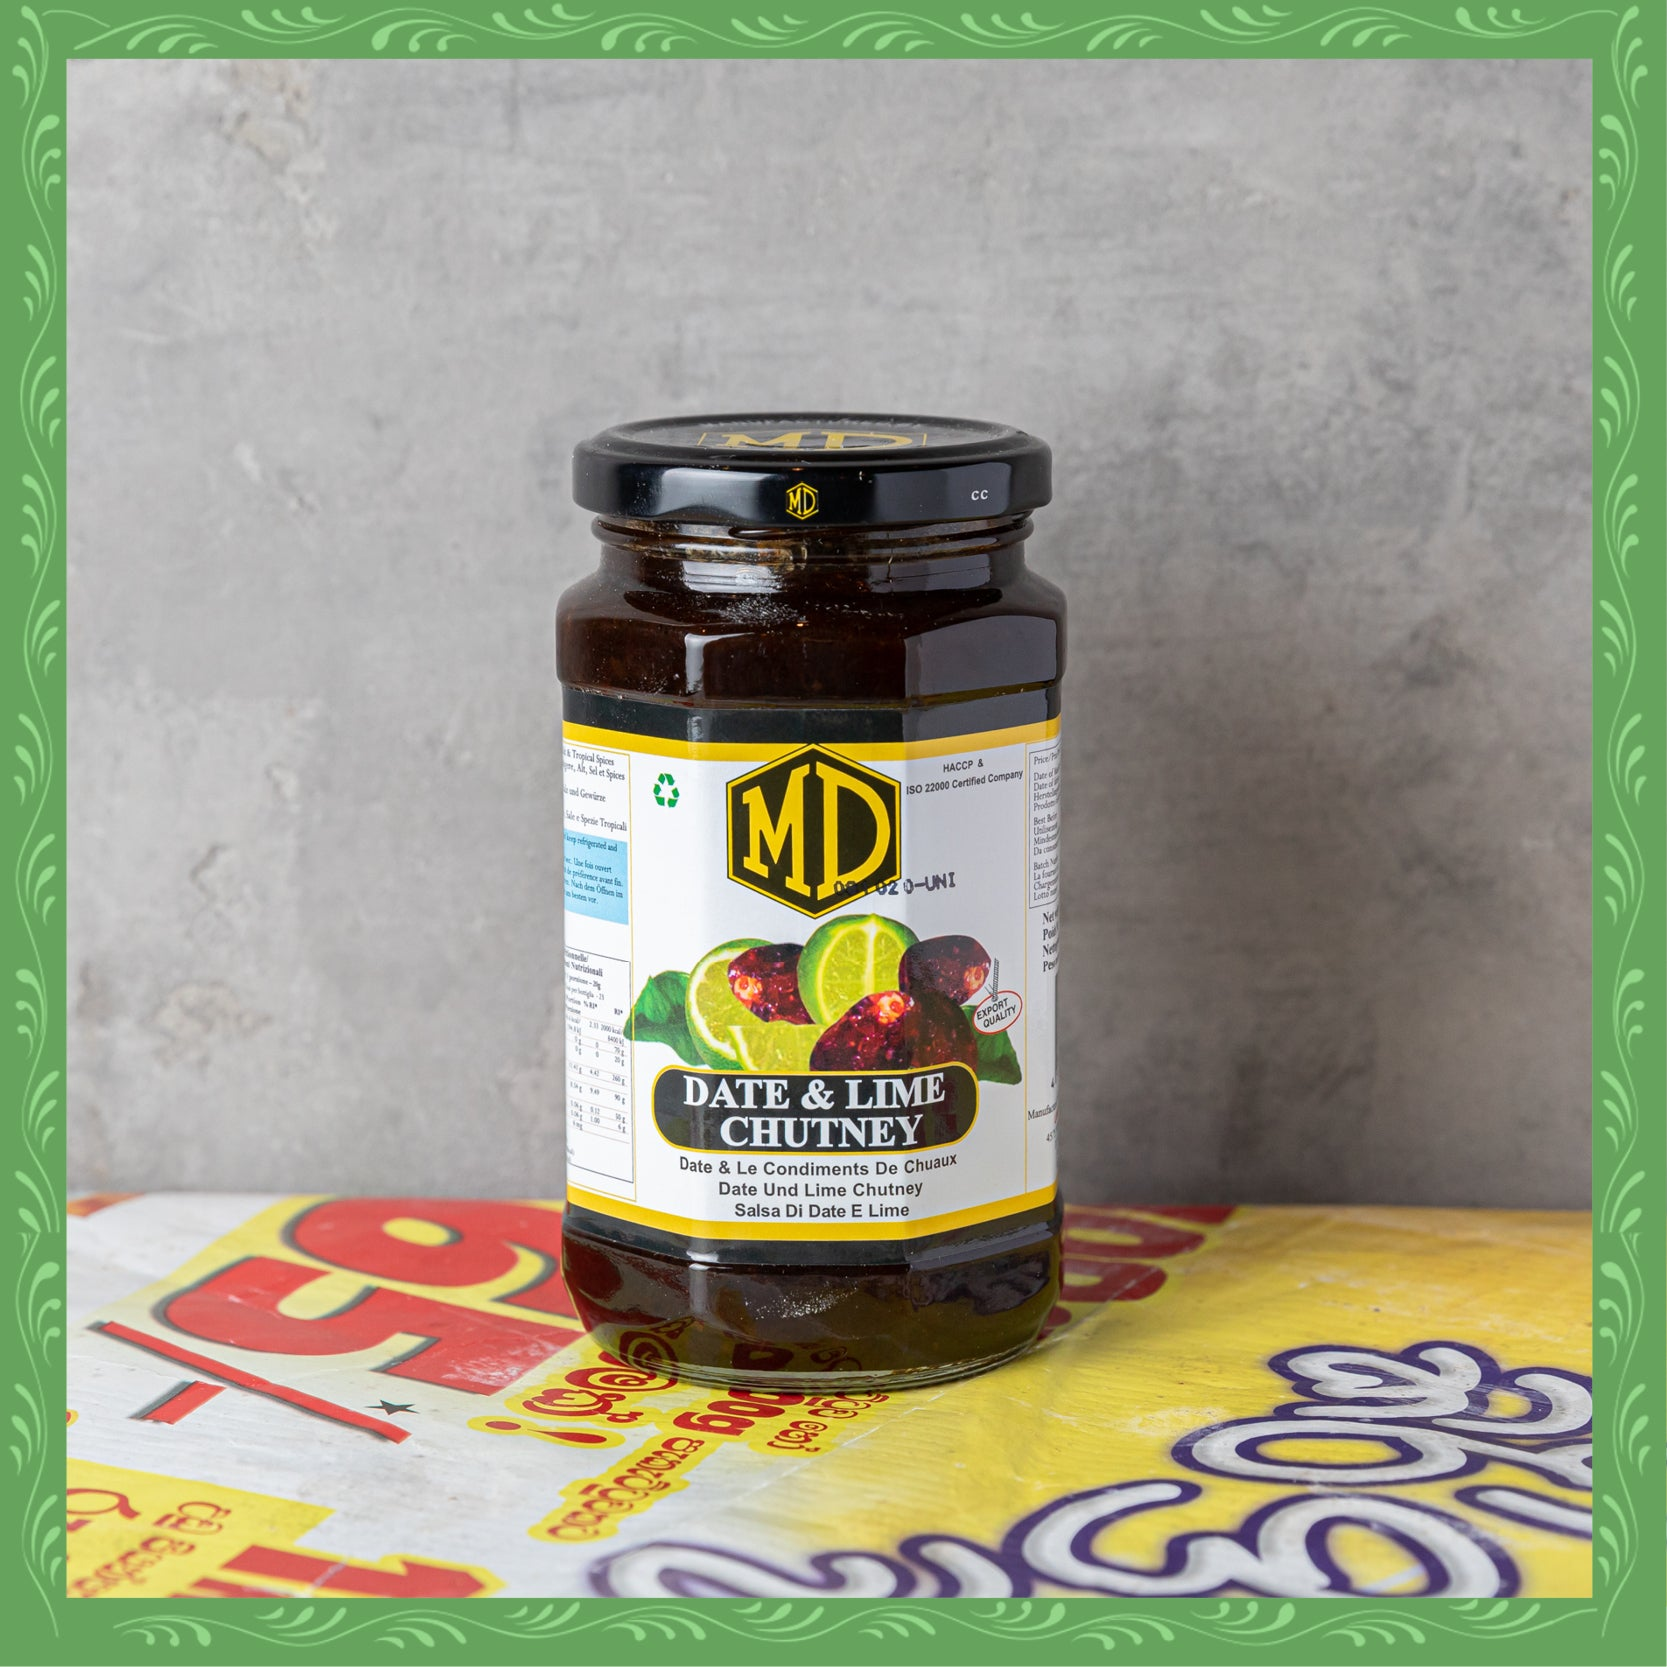 MD Date & Lime Chutney (450g)